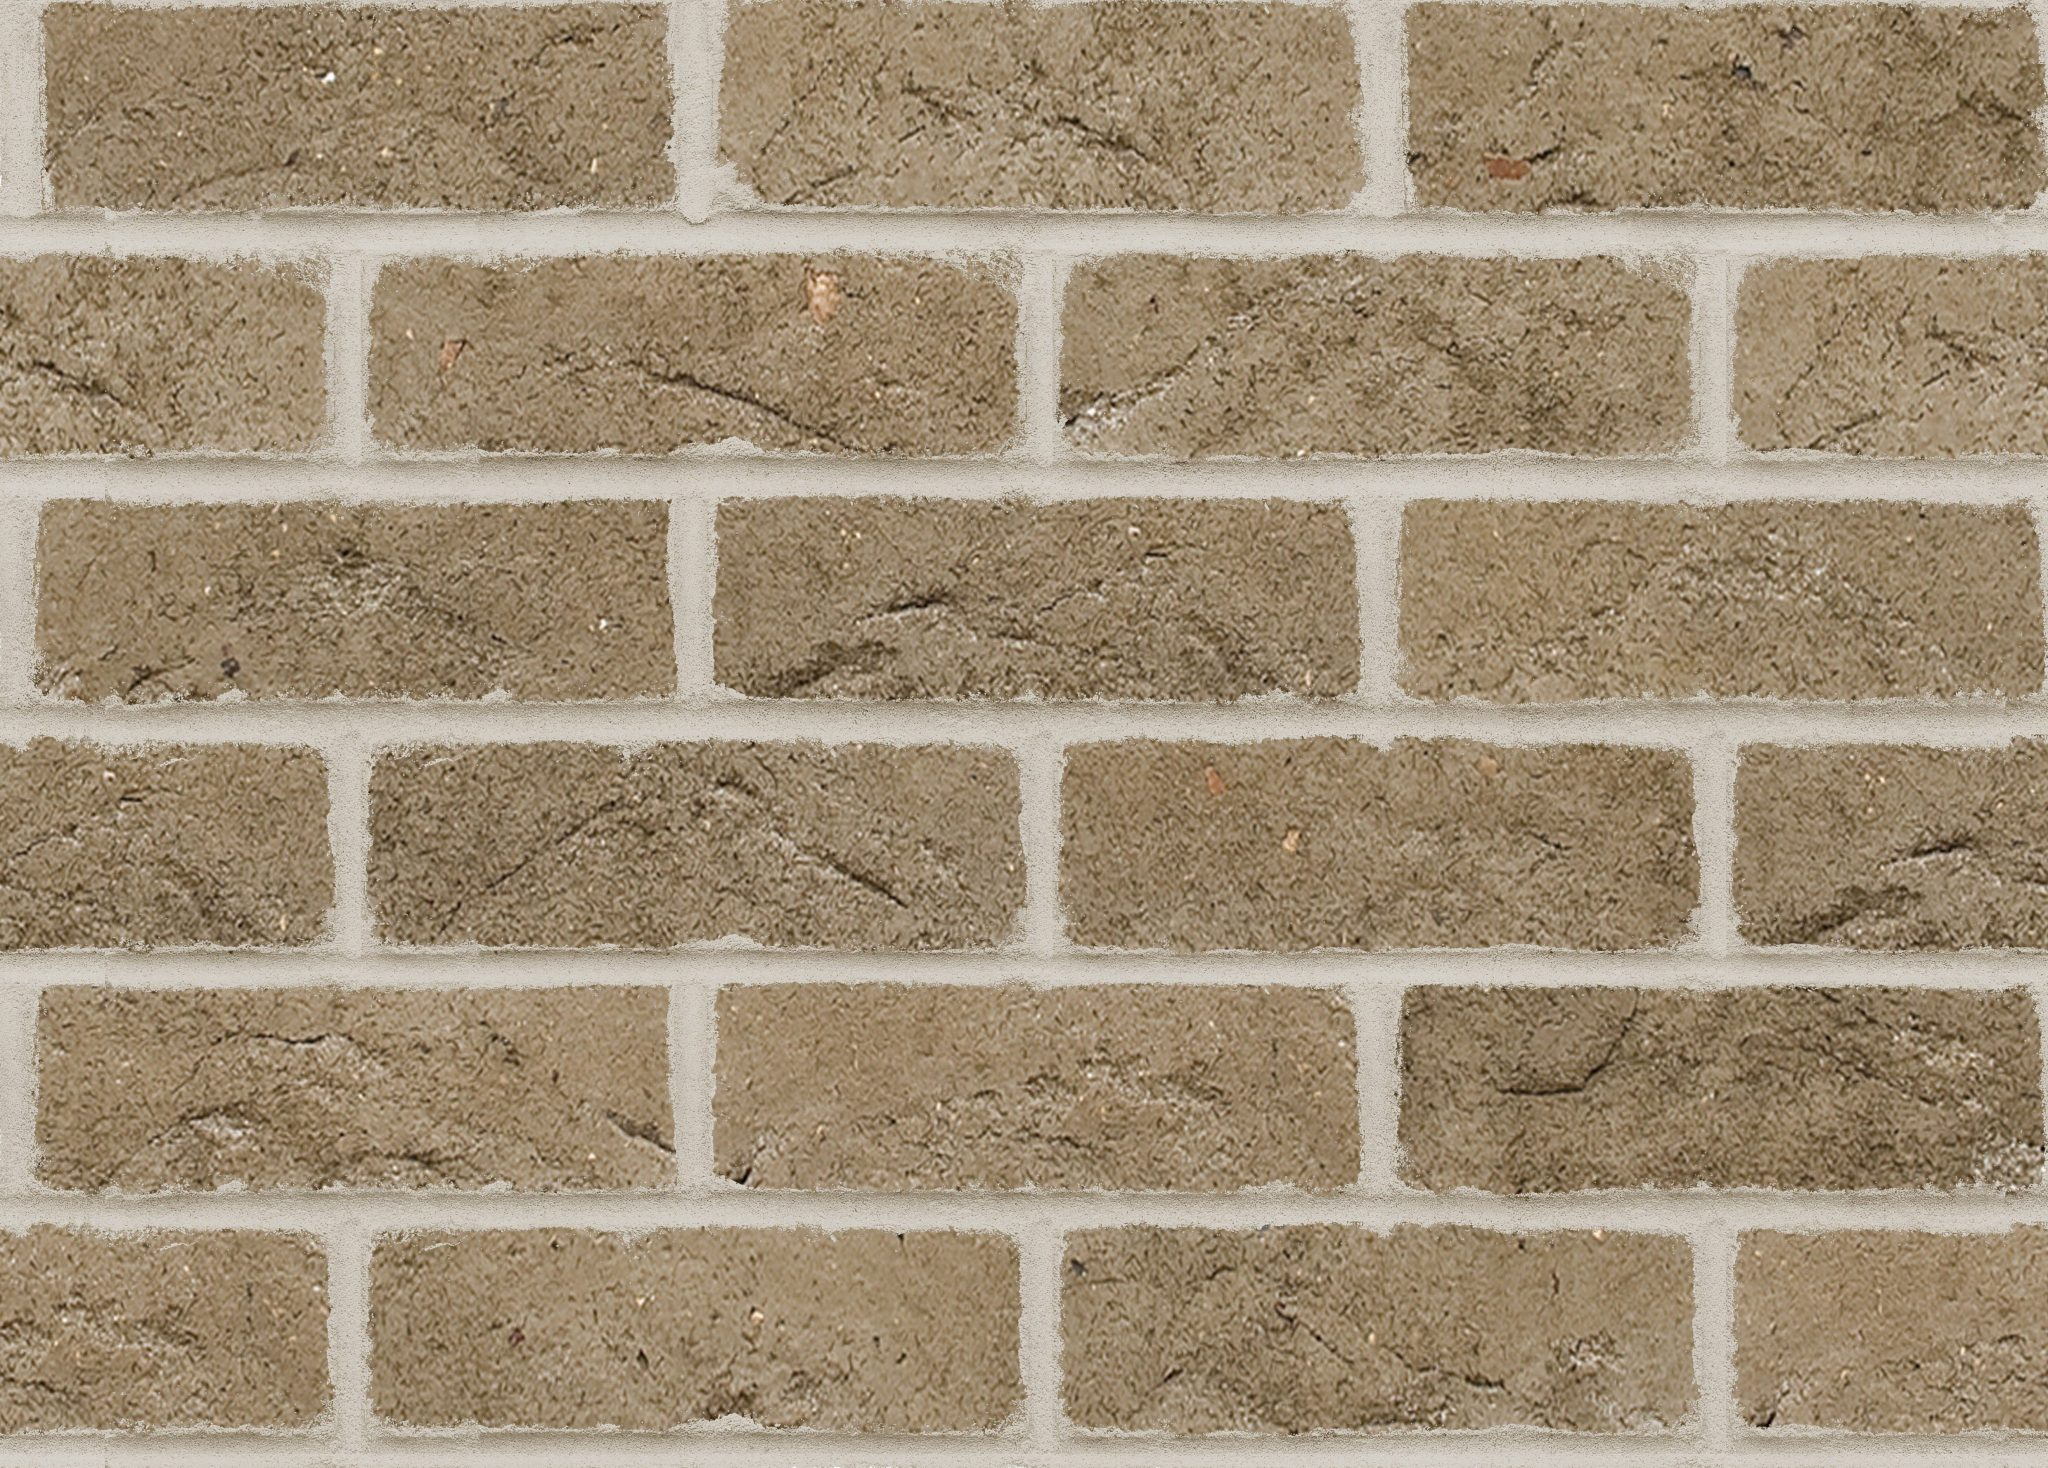 PrinciplesGrande230x76-110-240 - NSW Bricks